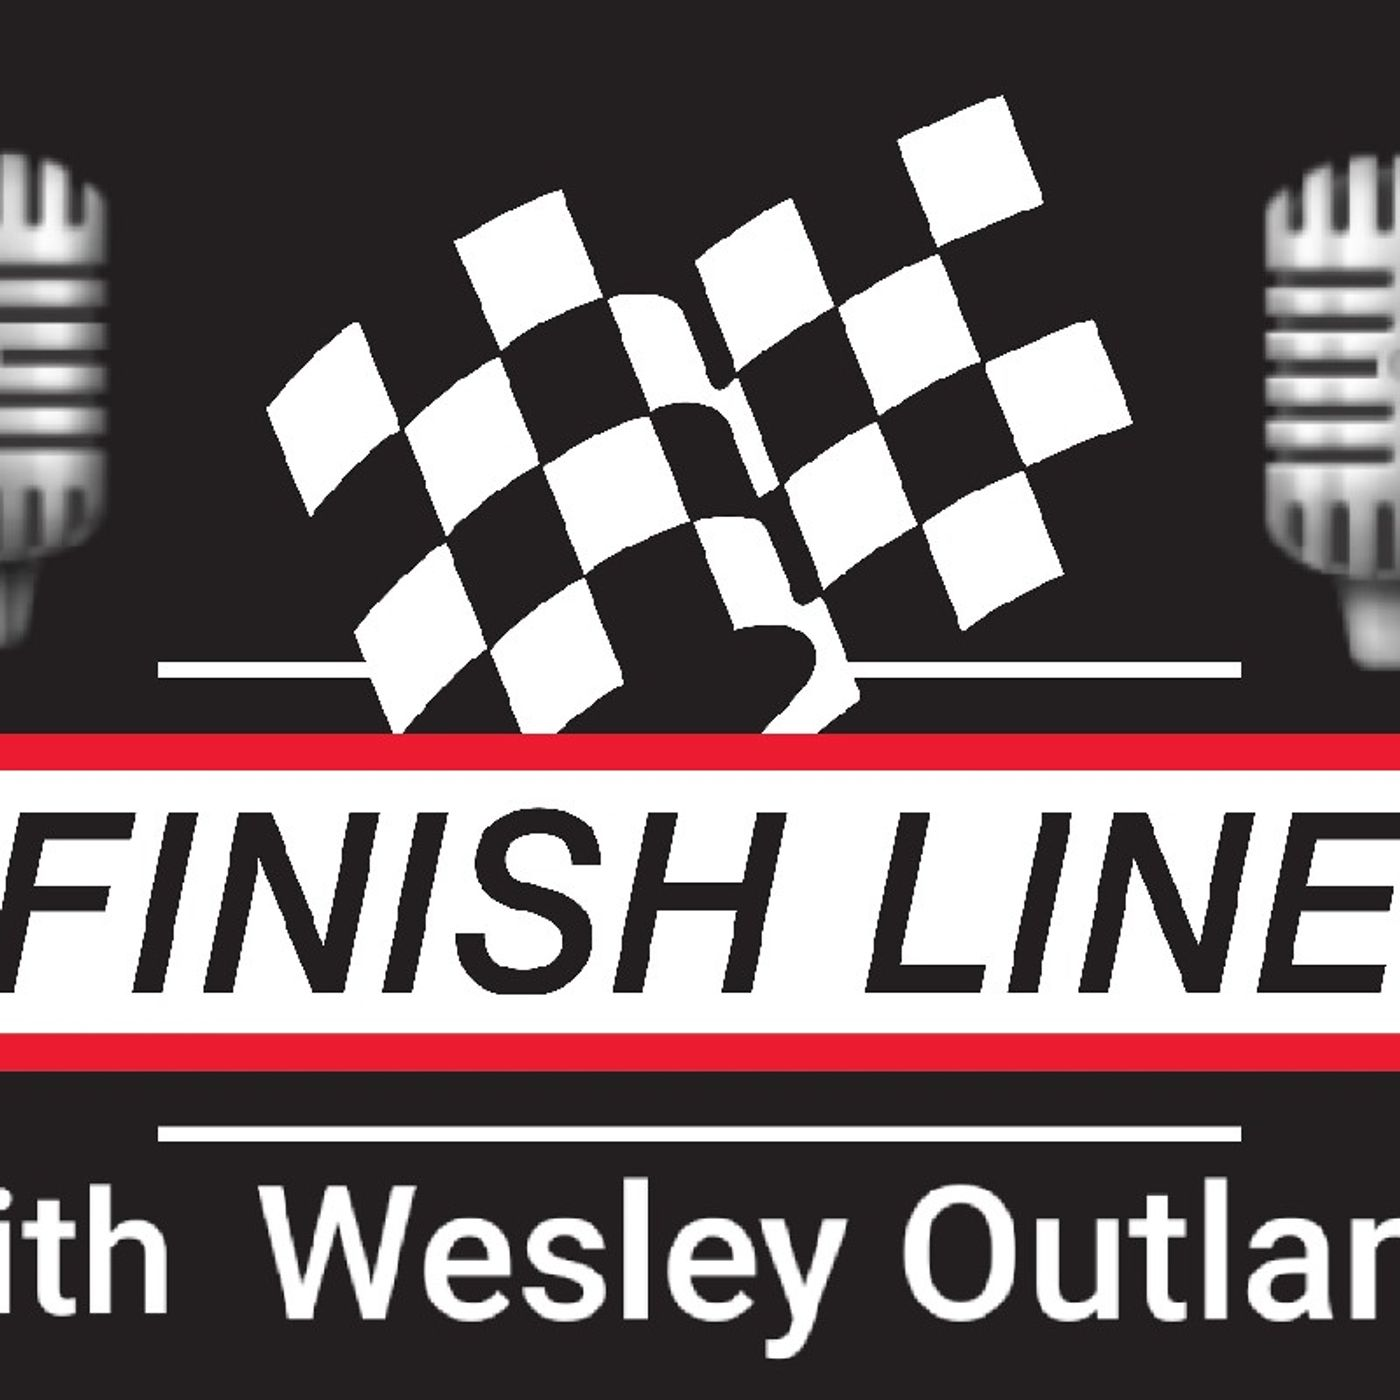 August 1st edition of #FinishLine Motorsports Show w/ Jason Myers, Brandon Overton, Carson Ferguson, Aaron Branham & Steve Surniak! 🏁🎙🏁